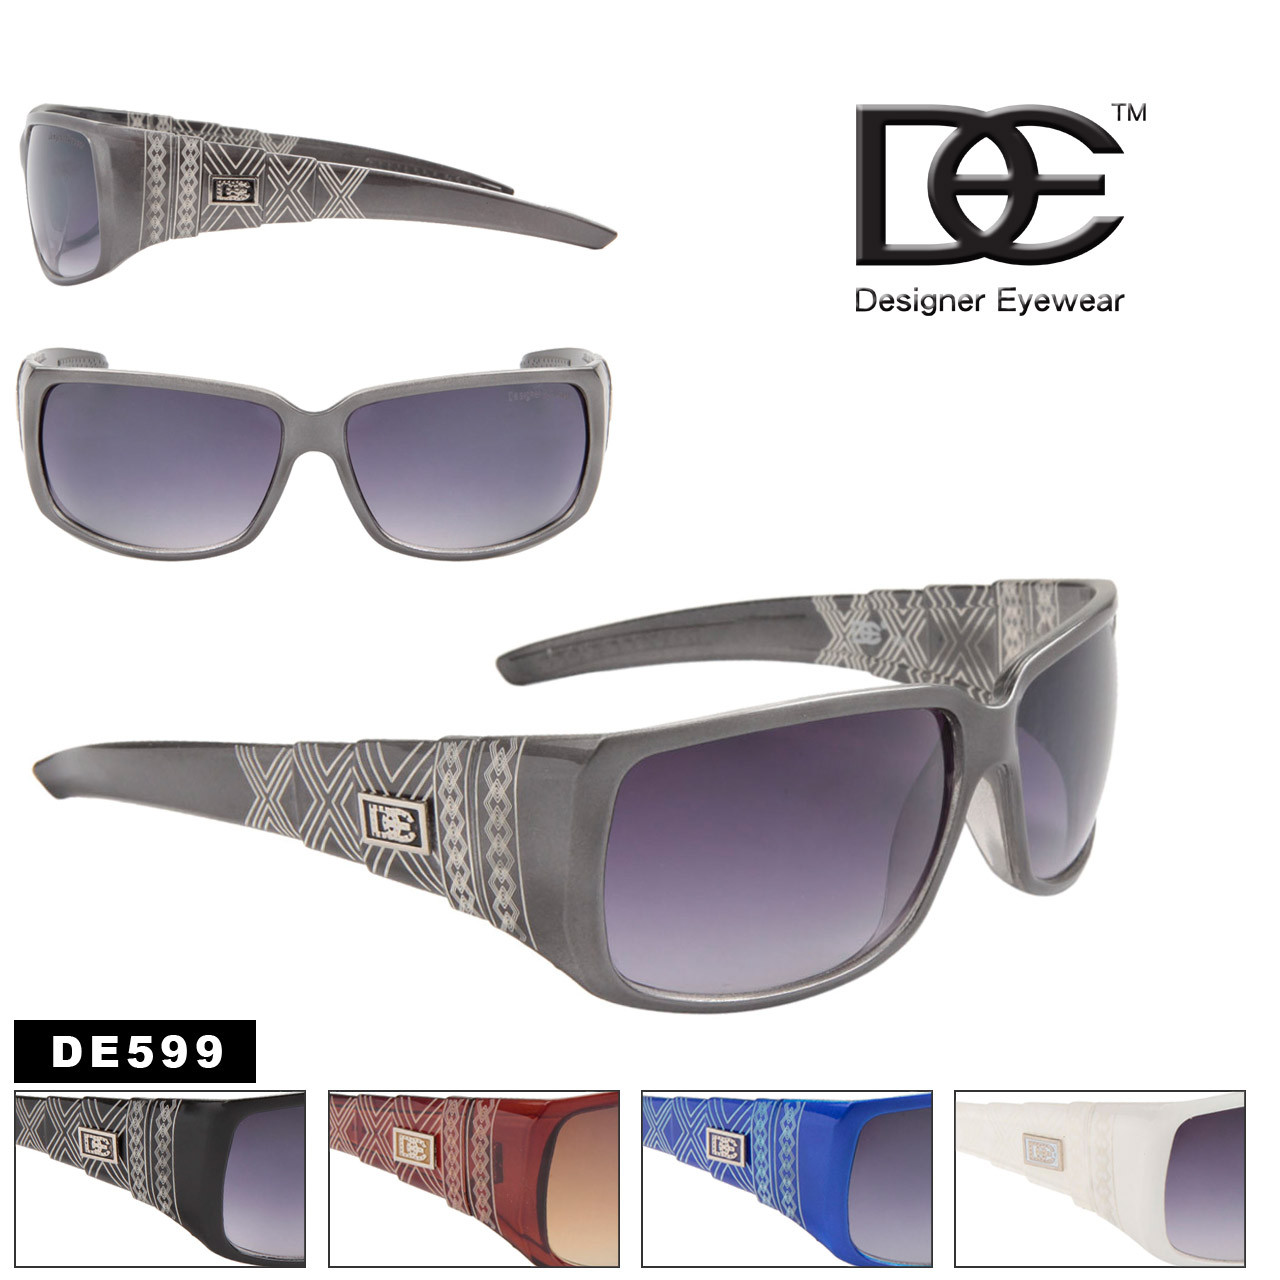 DE Designer Eyewear Wholesale Fashion Sunglasses